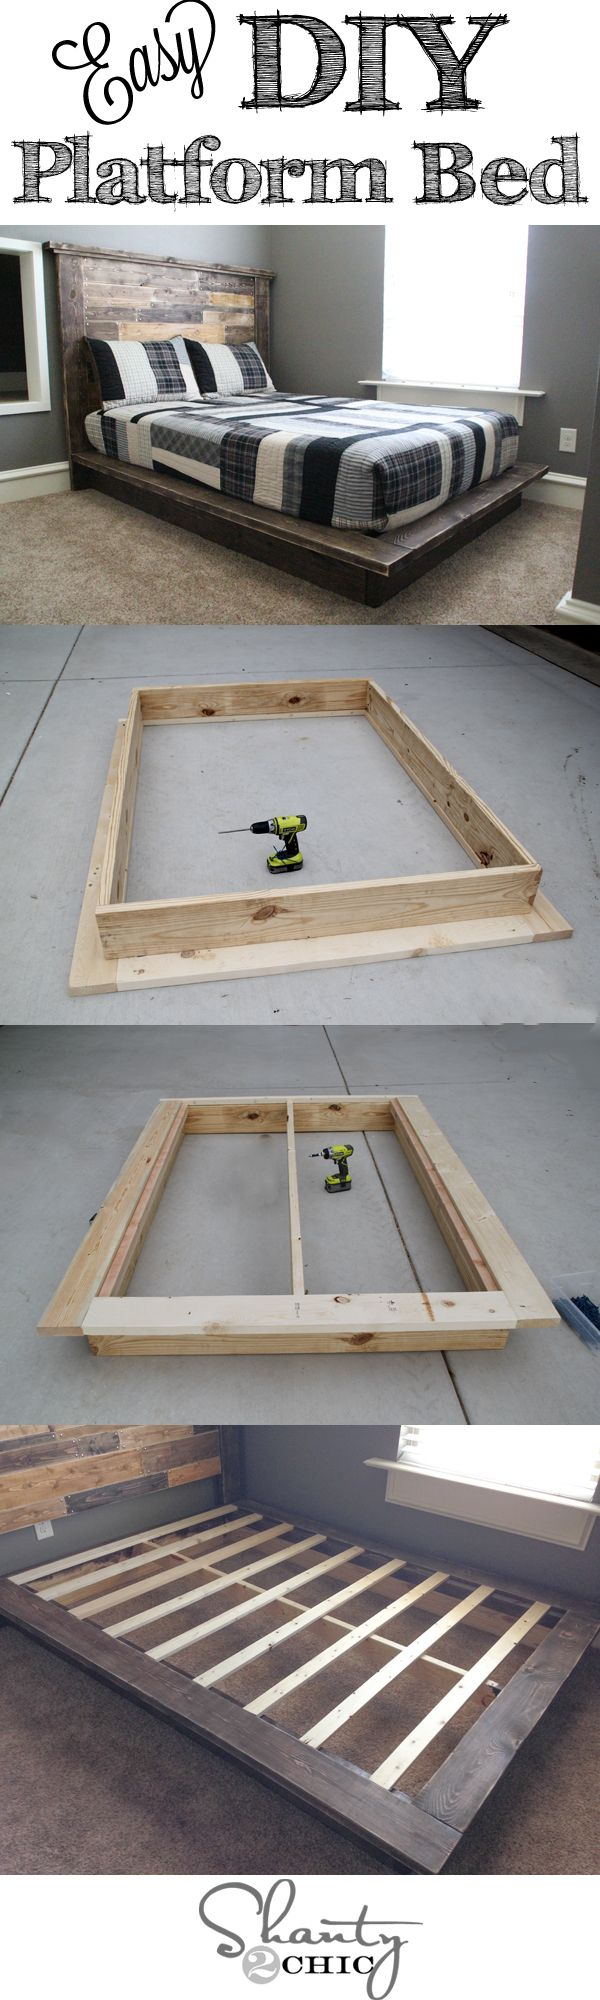 DIY Furniture Project Plan from Shanty2Chic: Learn How to Build an Easy Platform Bed